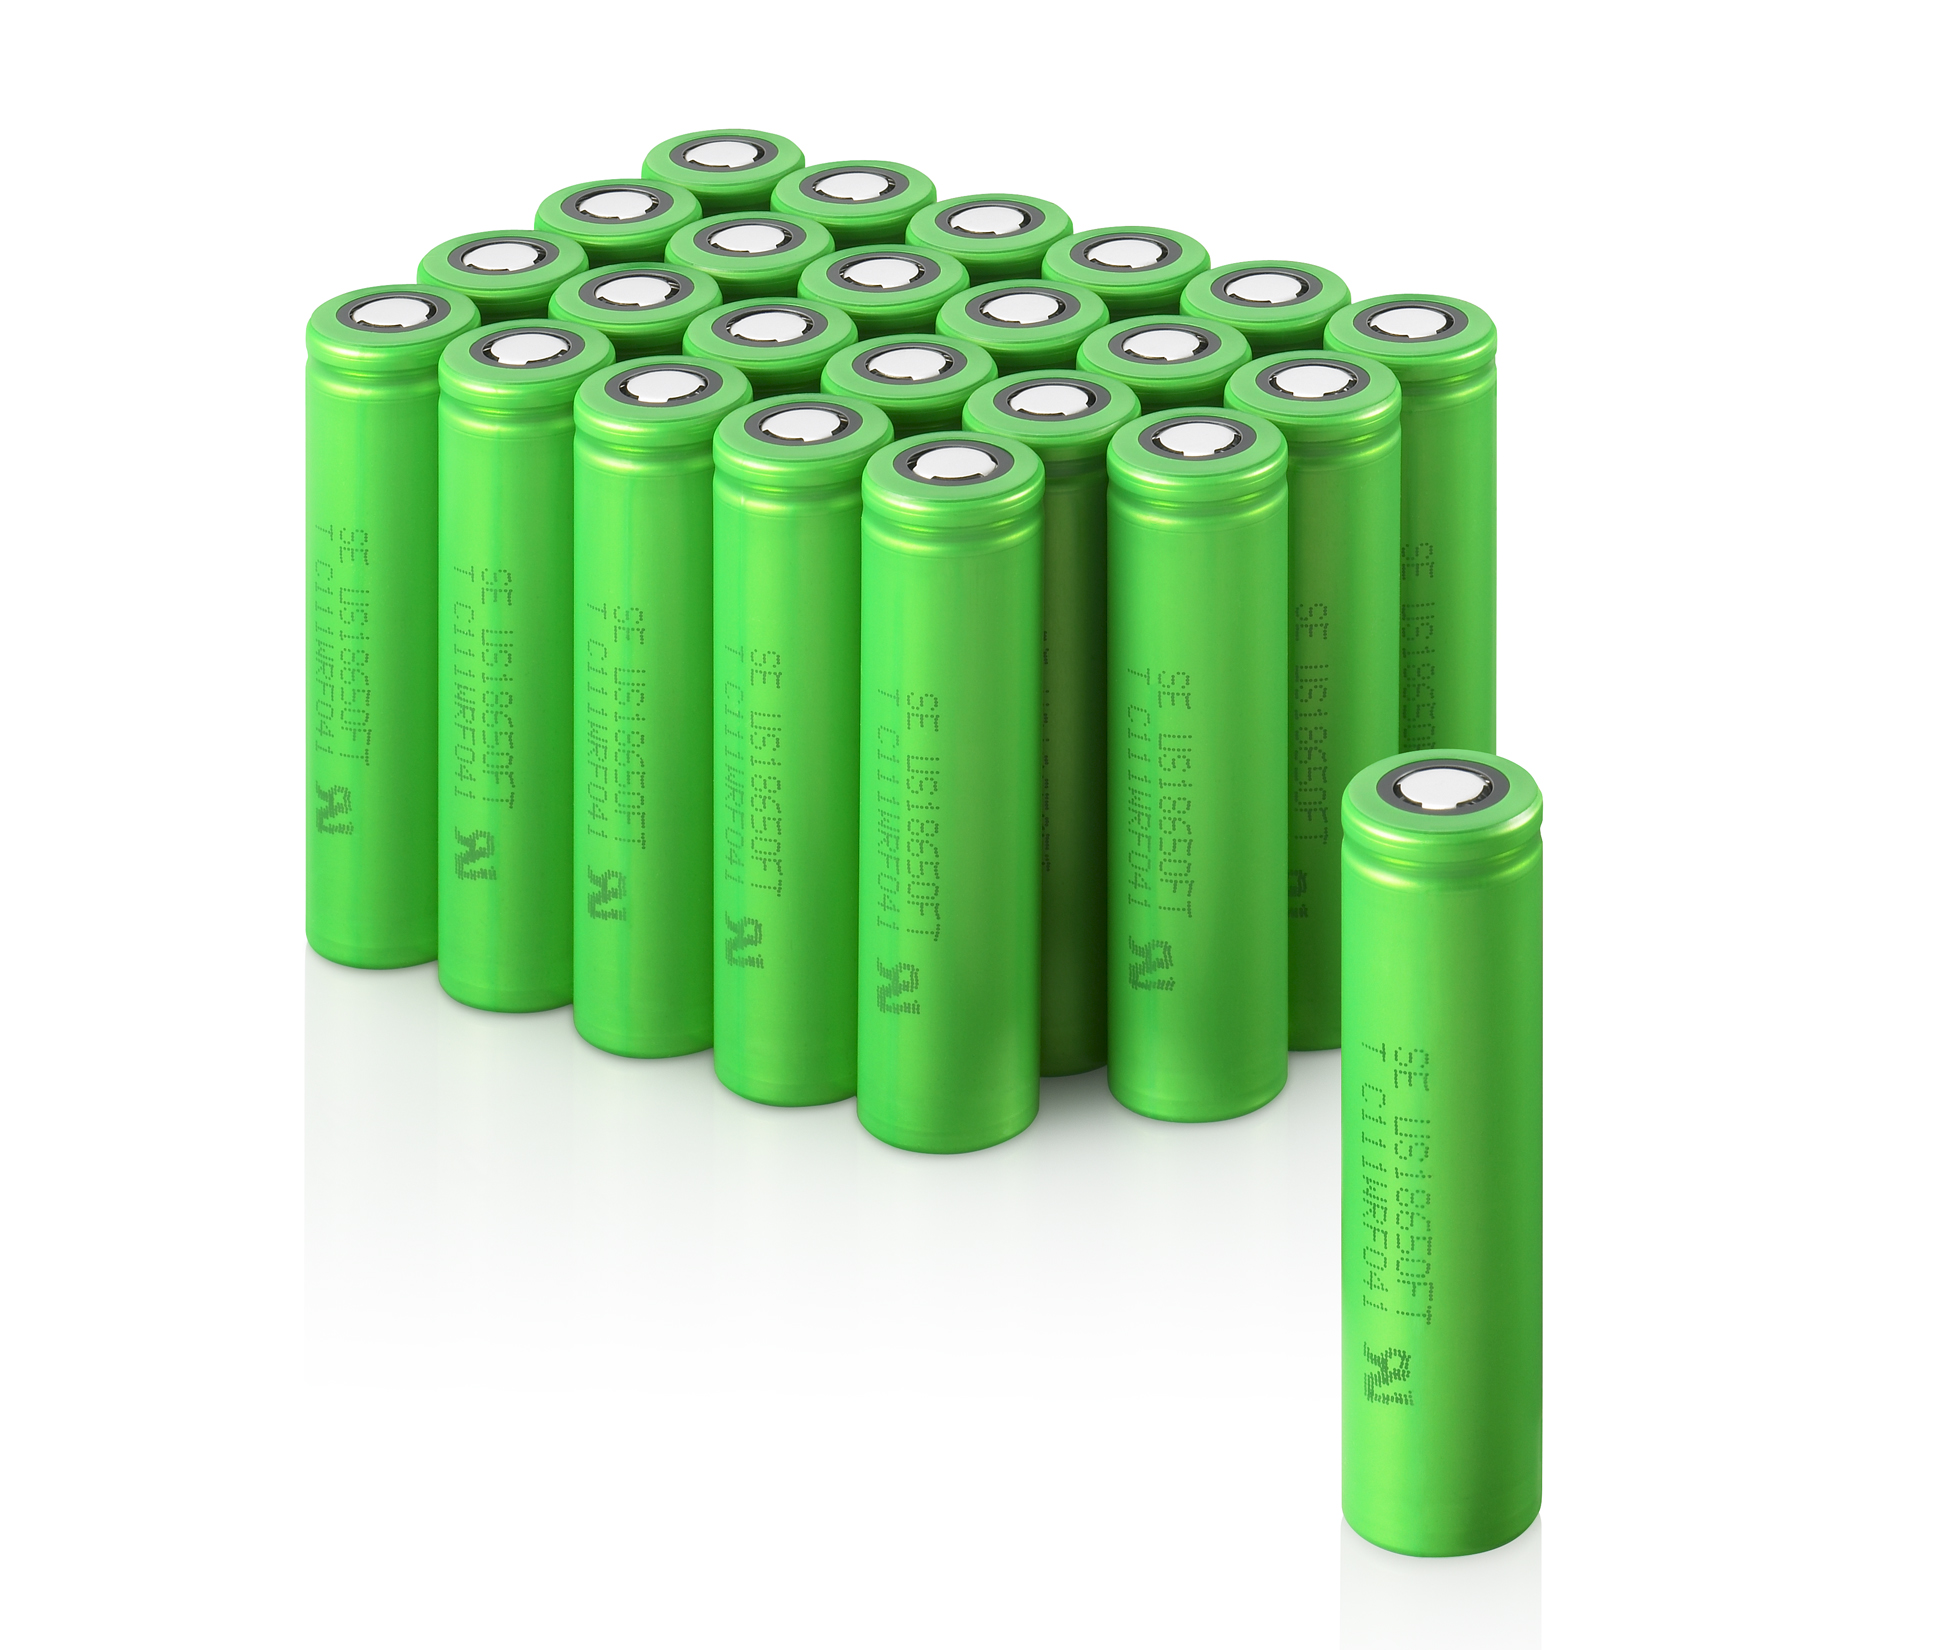 Lithium Ion Battery >> First Ever Look Inside A Working Lithium Ion Battery College Of